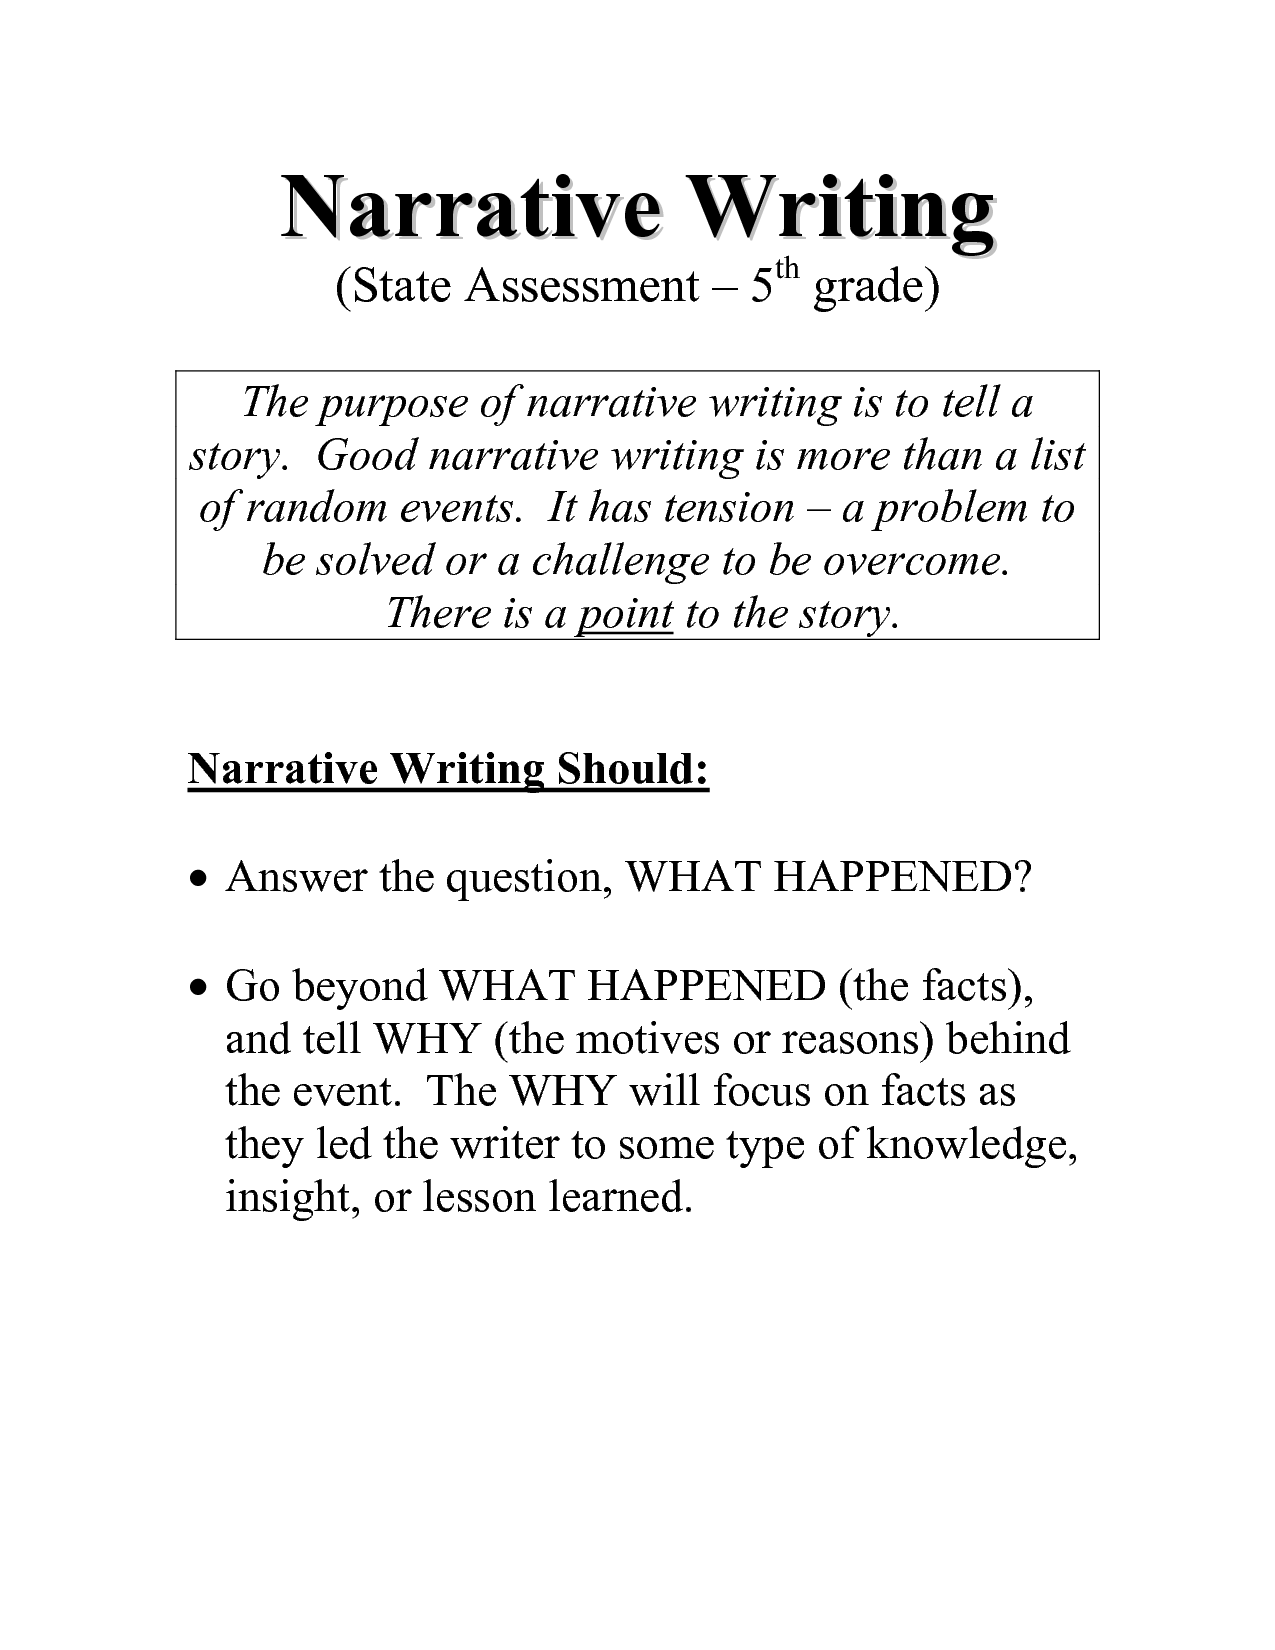 Easy narrative essay topics